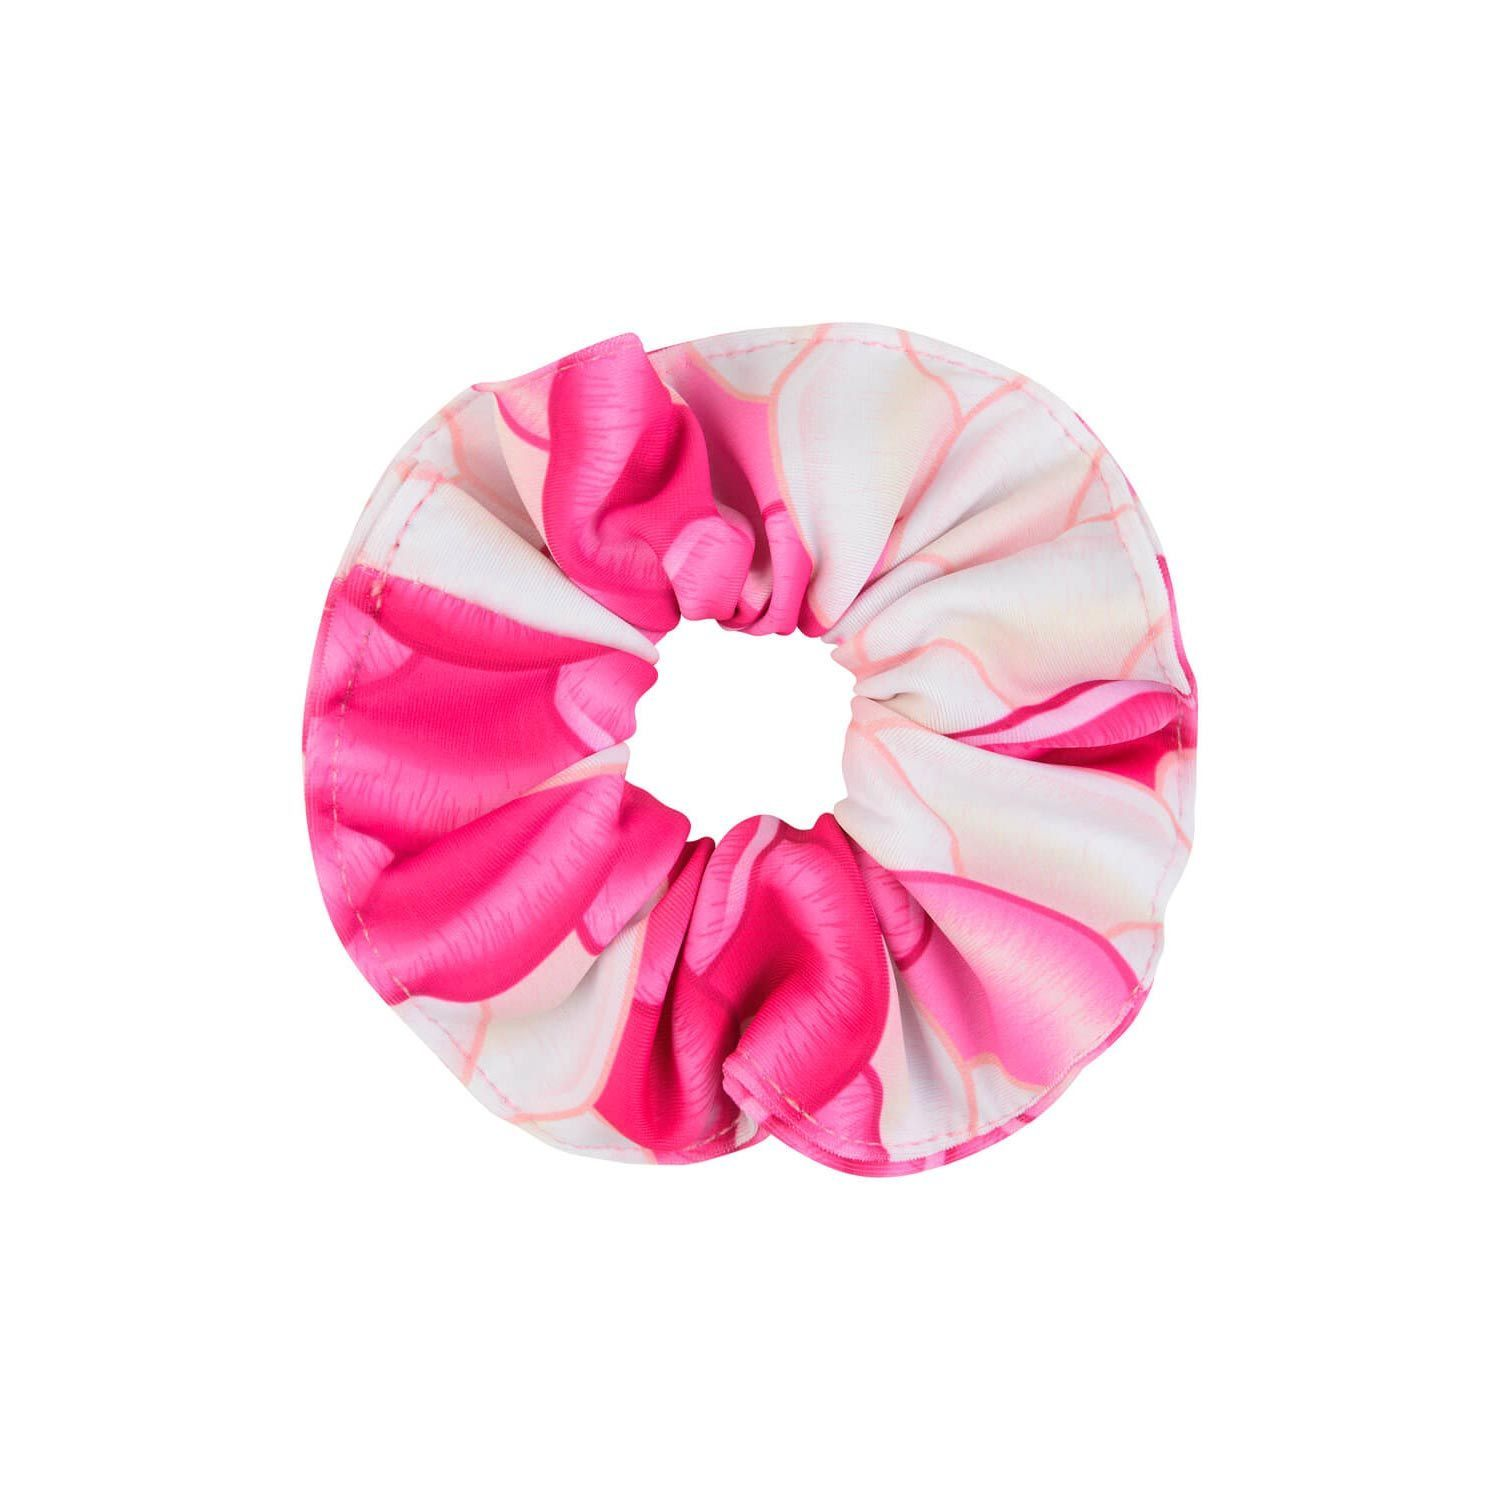 Chelsea Pink Rose Mermaid hair scrunchie